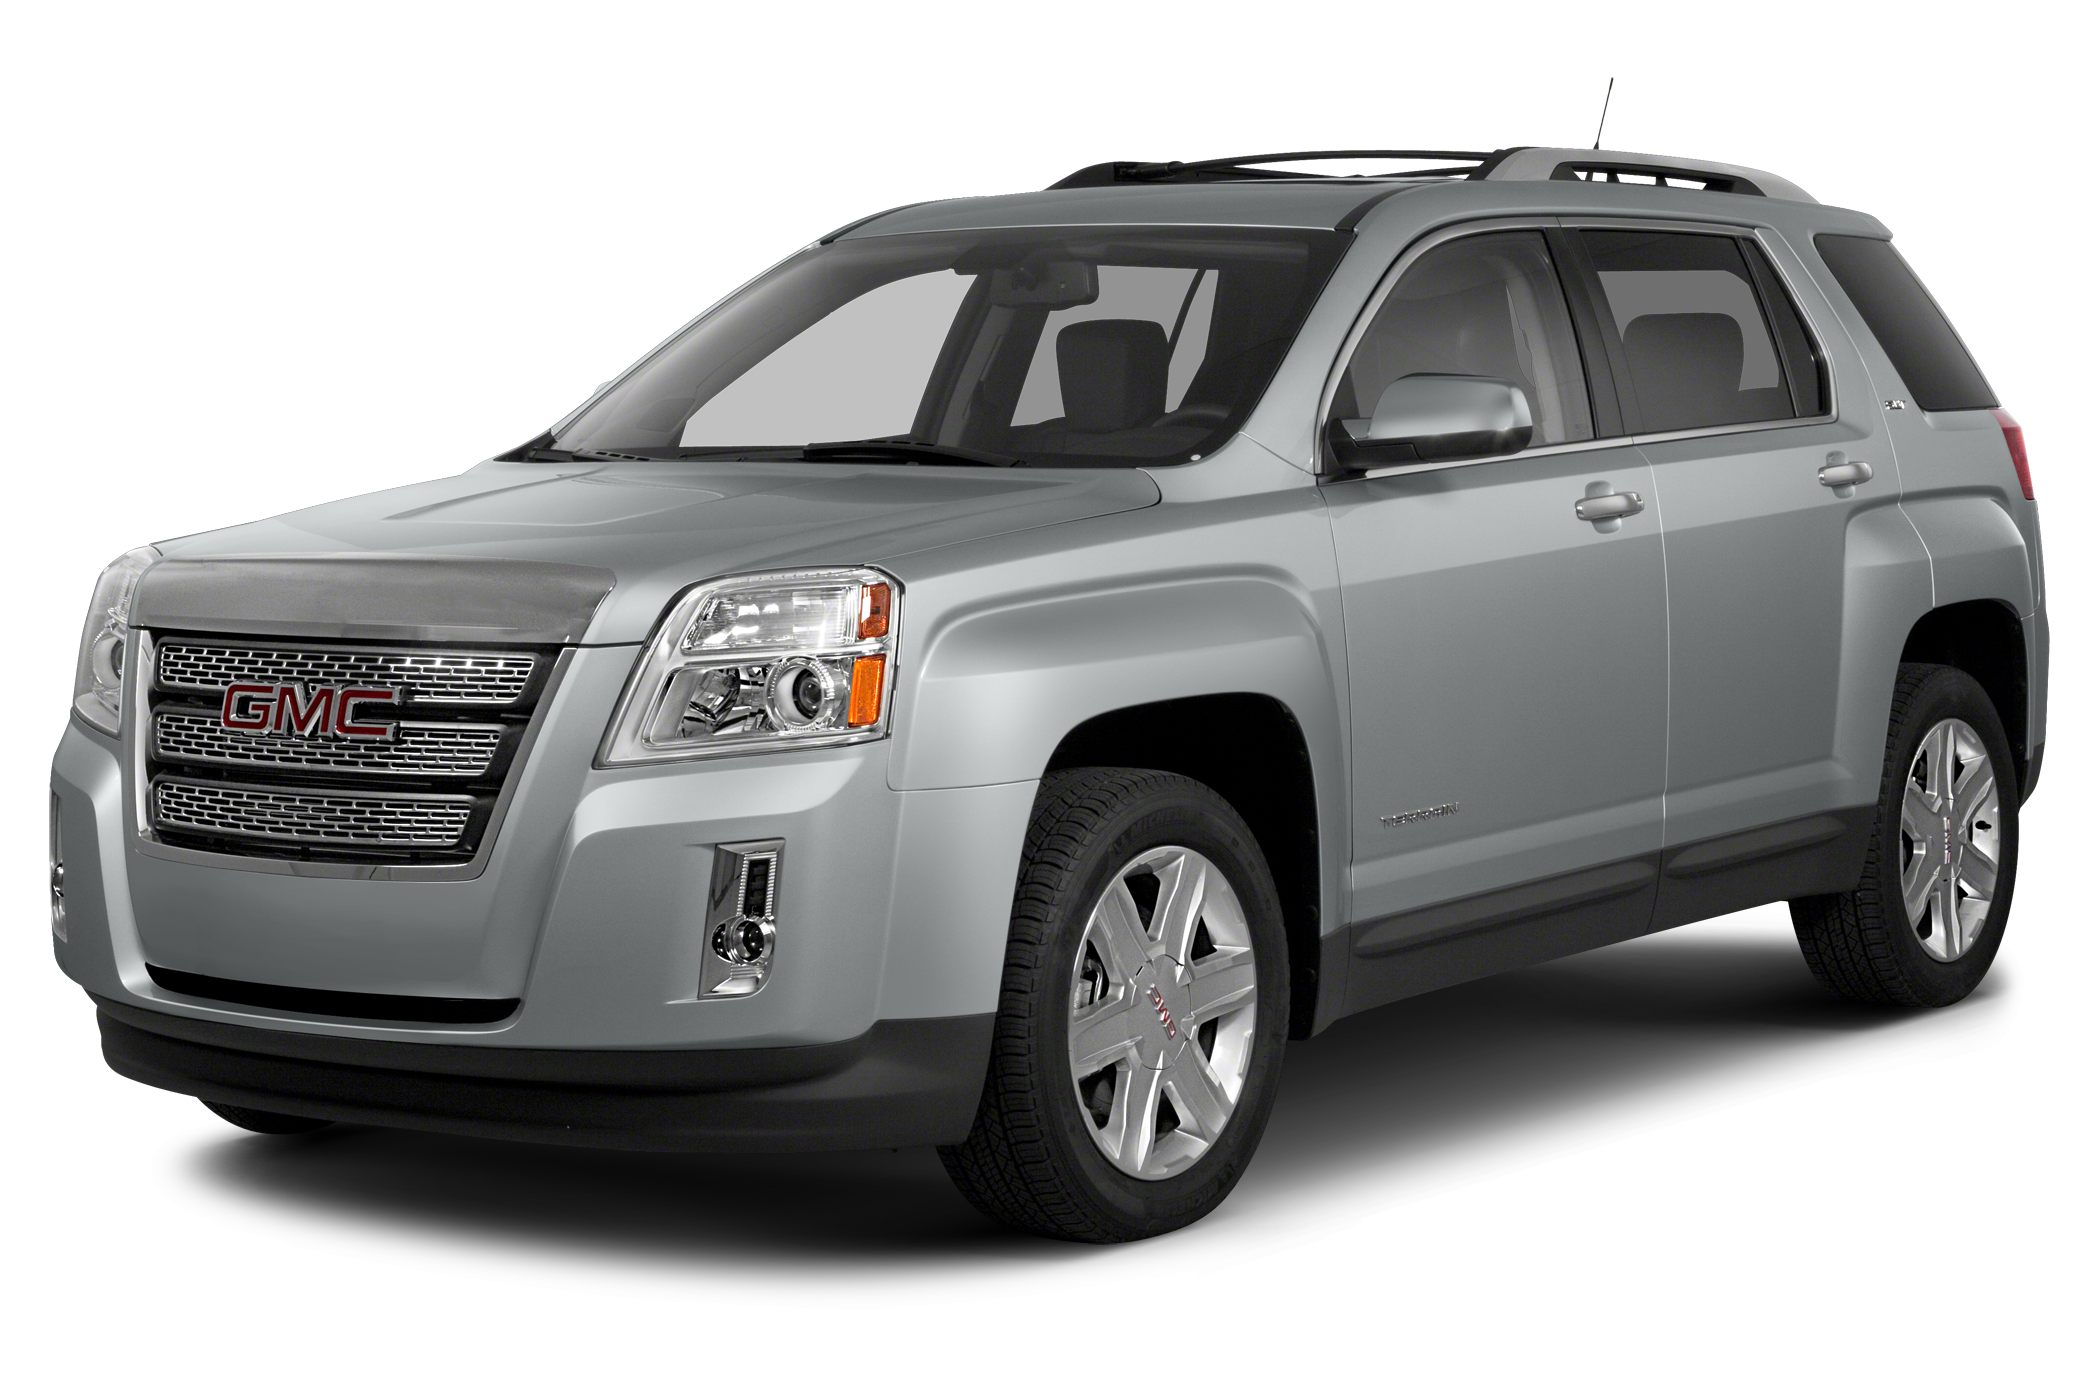 2014 GMC Terrain SLE-1 ITS OUR 50TH ANNIVERSARY HERE AT MARTYS AND TO CELEBRATE WERE OFFERING TH